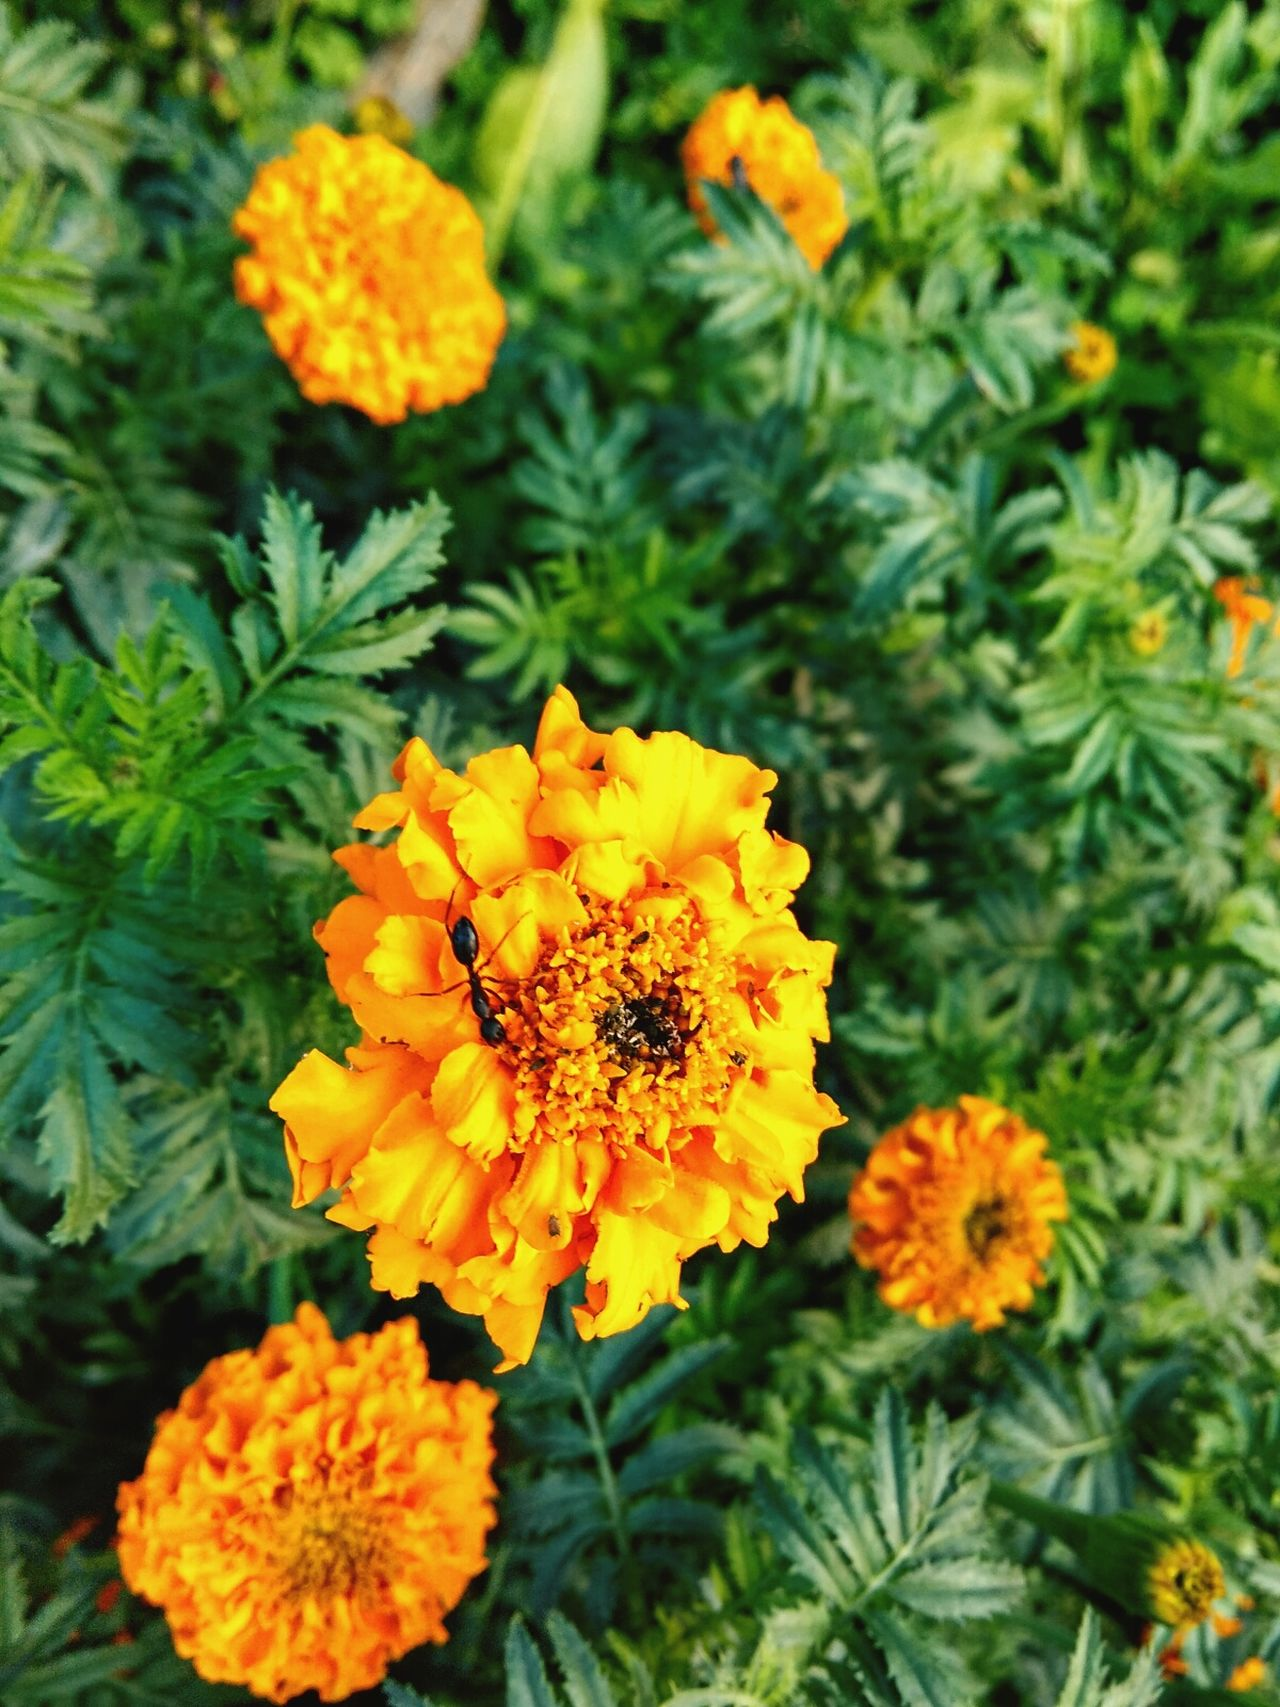 Flowers Yellow Flowers Marigold 💚 Flower Photography Black Ant On The Flower Black Ant Focused Lens Blur Nature Mobile Photography Good Morning✌♥ Eyeem🐛💯👚😢💚